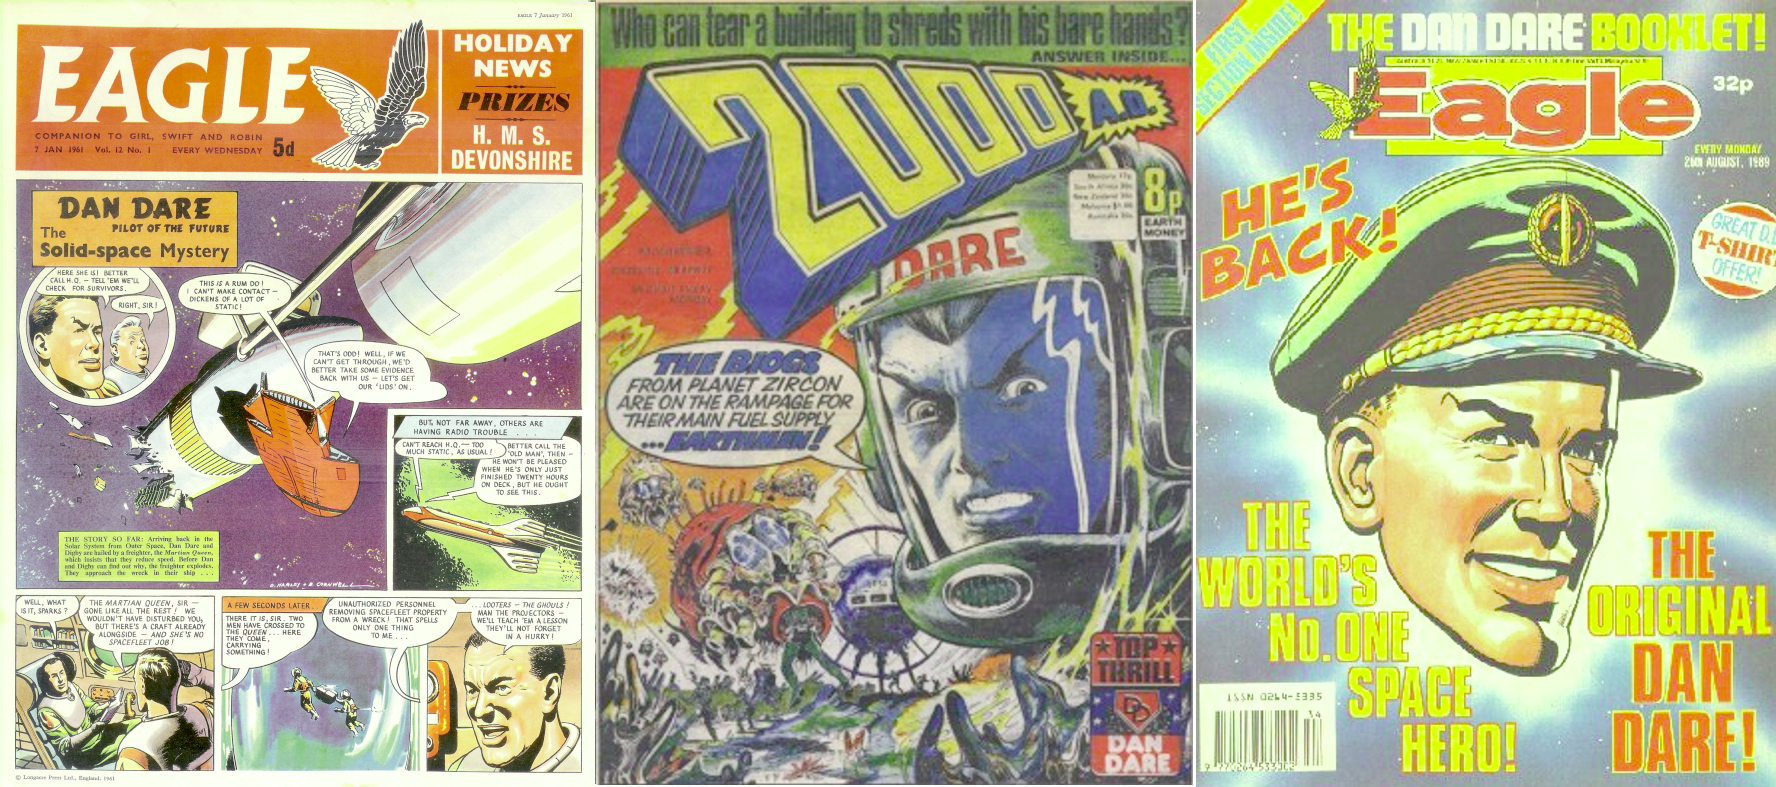 Three anthologies featuring Dan Dare: The Eagle, 2000AD and 1980s Eagle comic